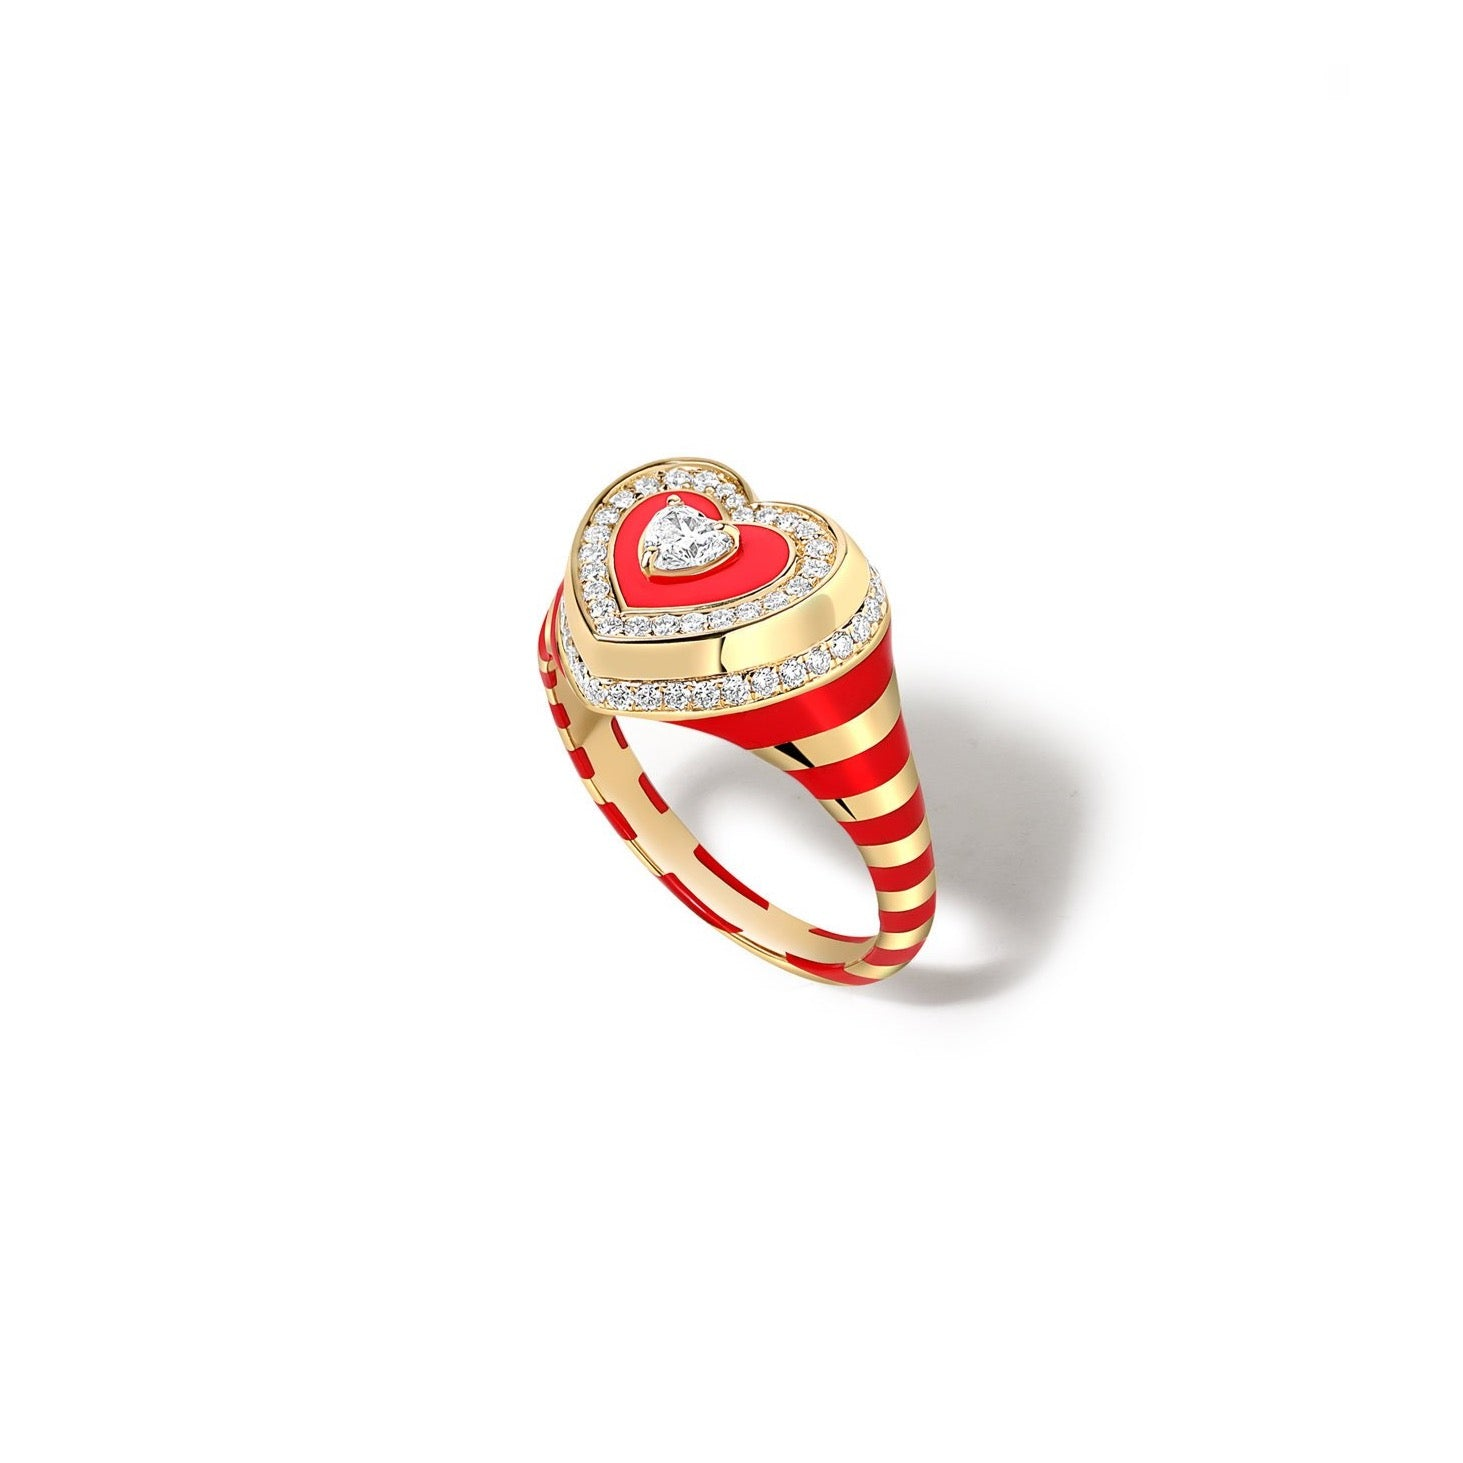 Utama Enamel & Diamond Heart Signet Ring